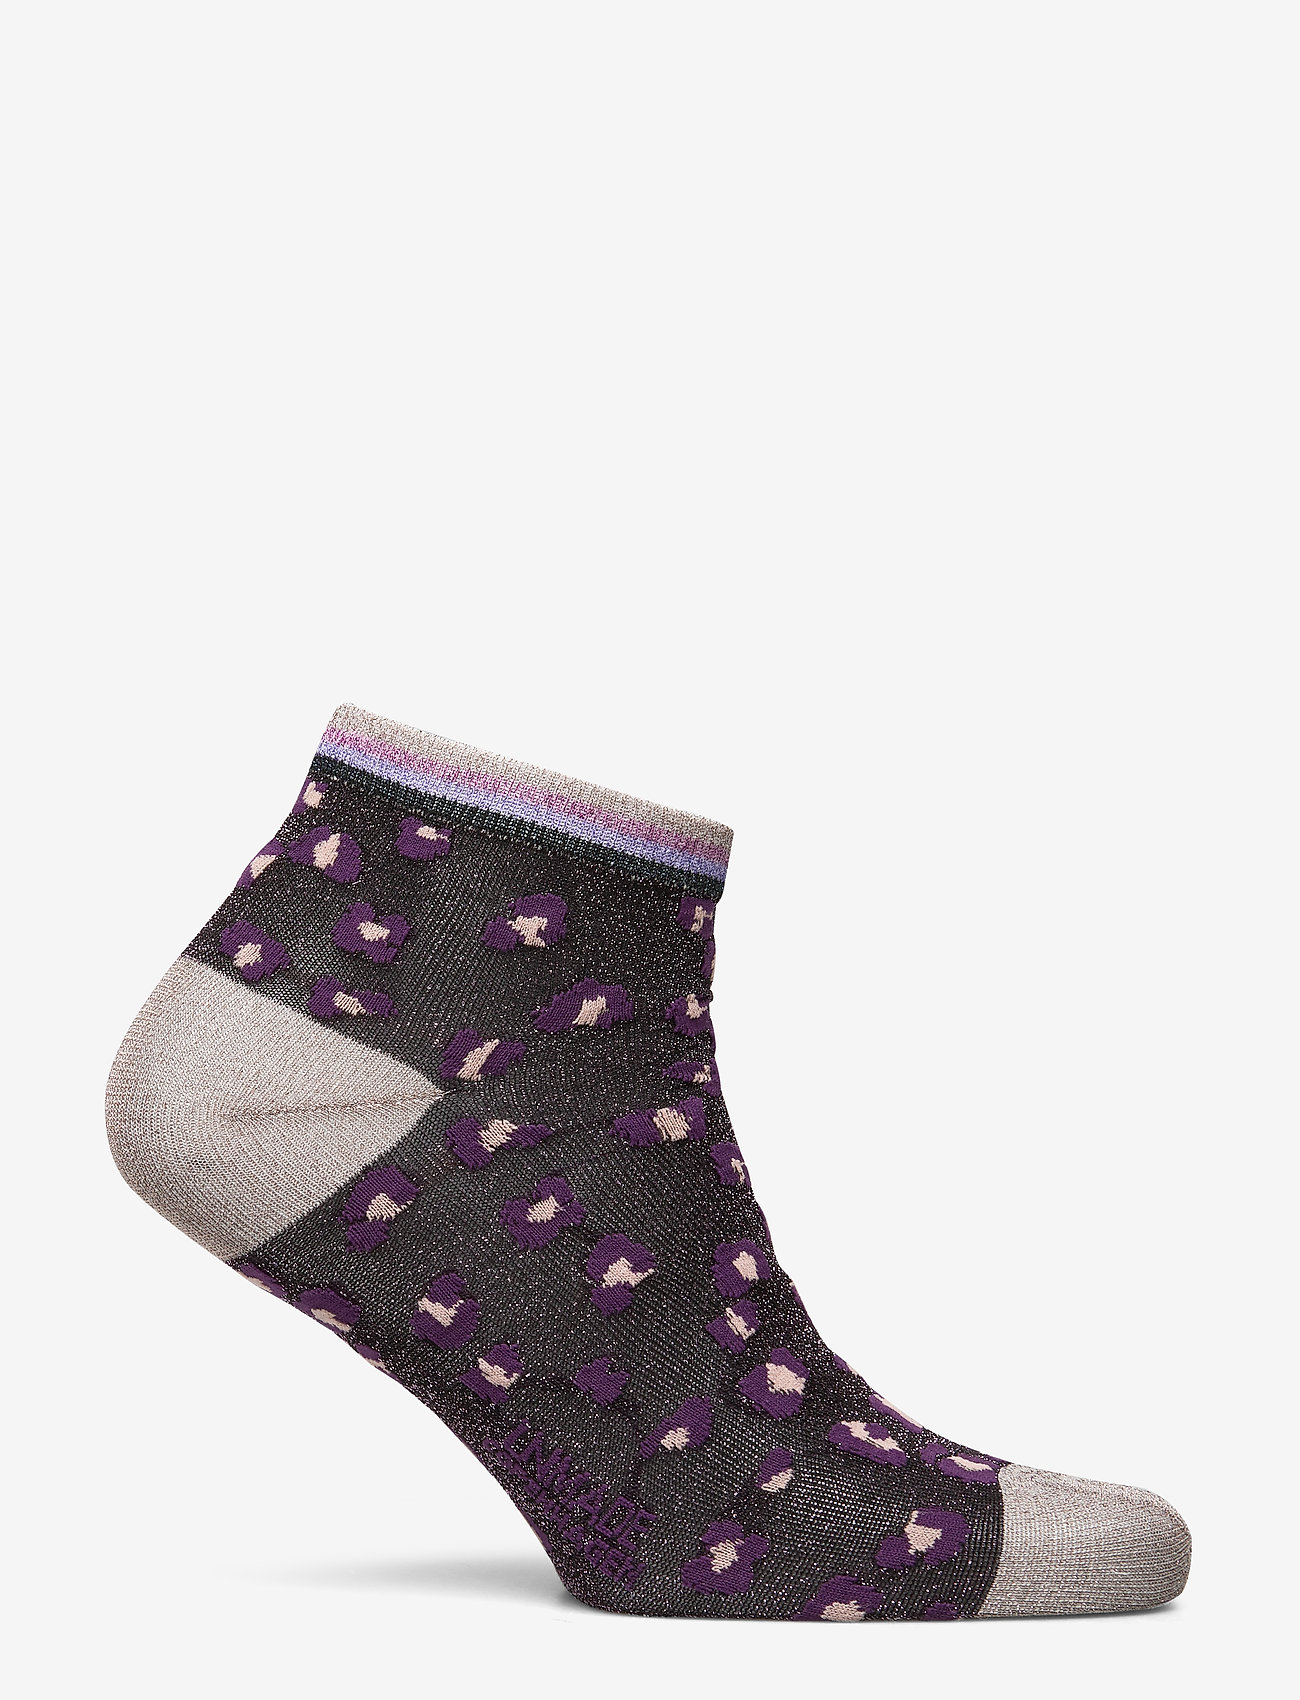 Carree Short Sock (Rose) - UNMADE Copenhagen NJDJCX